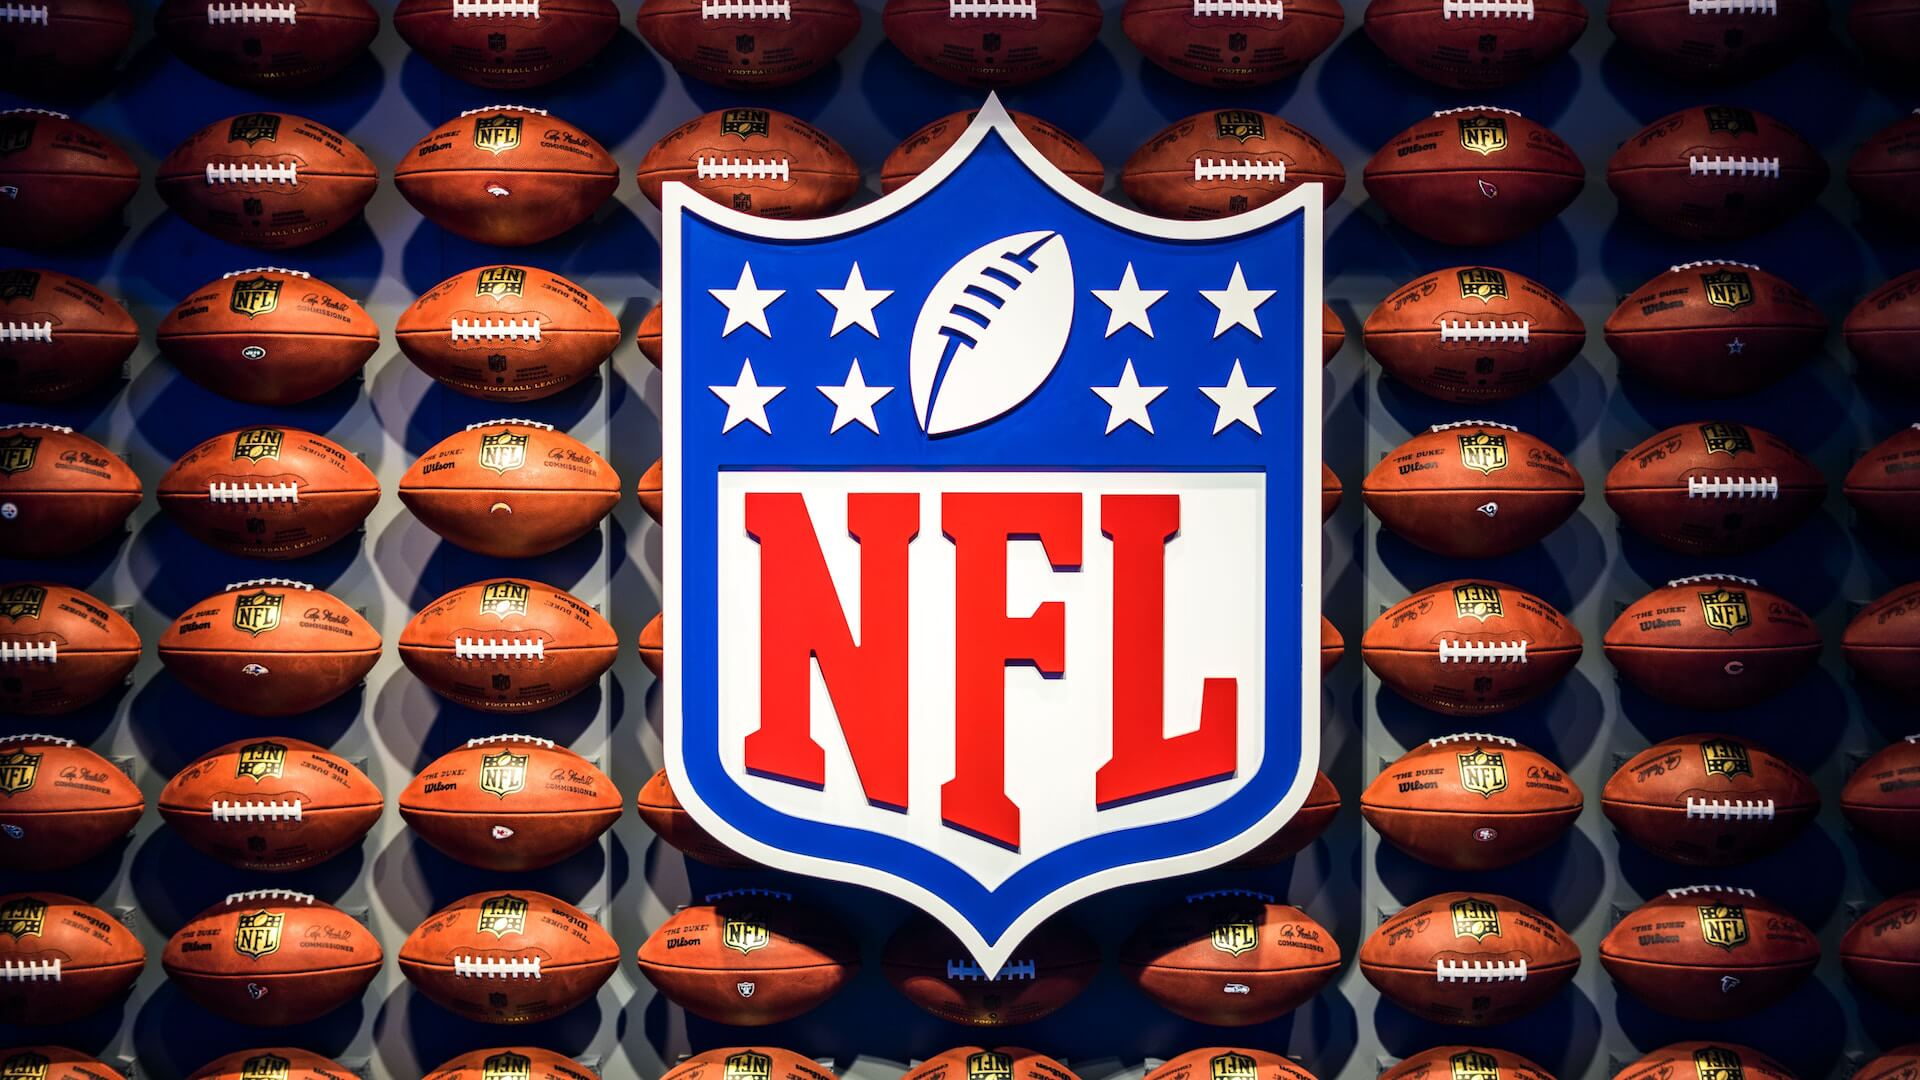 NFL logo with footballs in the background